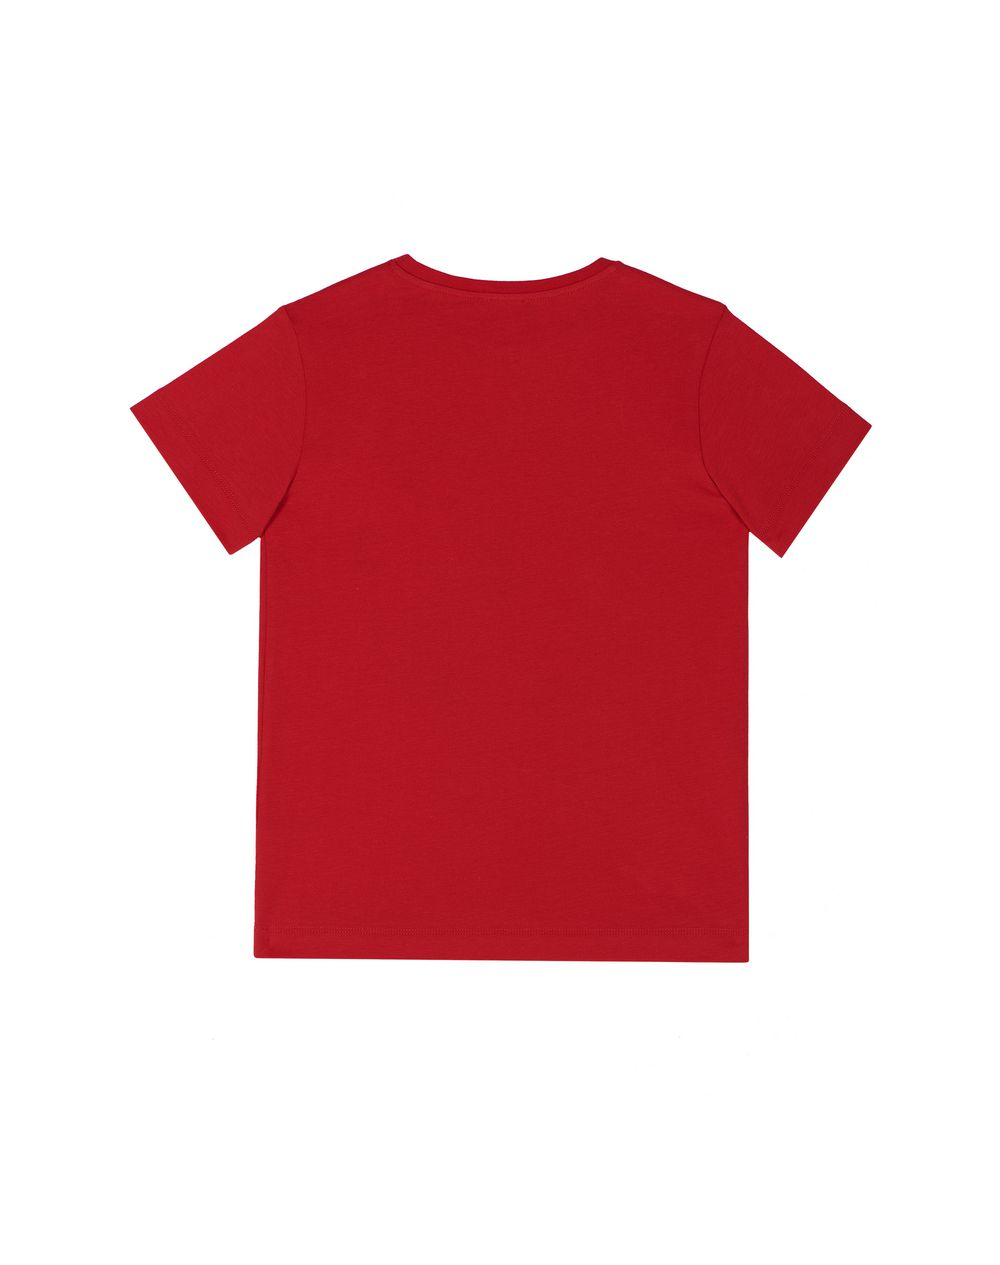 RED PRINT T-SHIRT - Lanvin